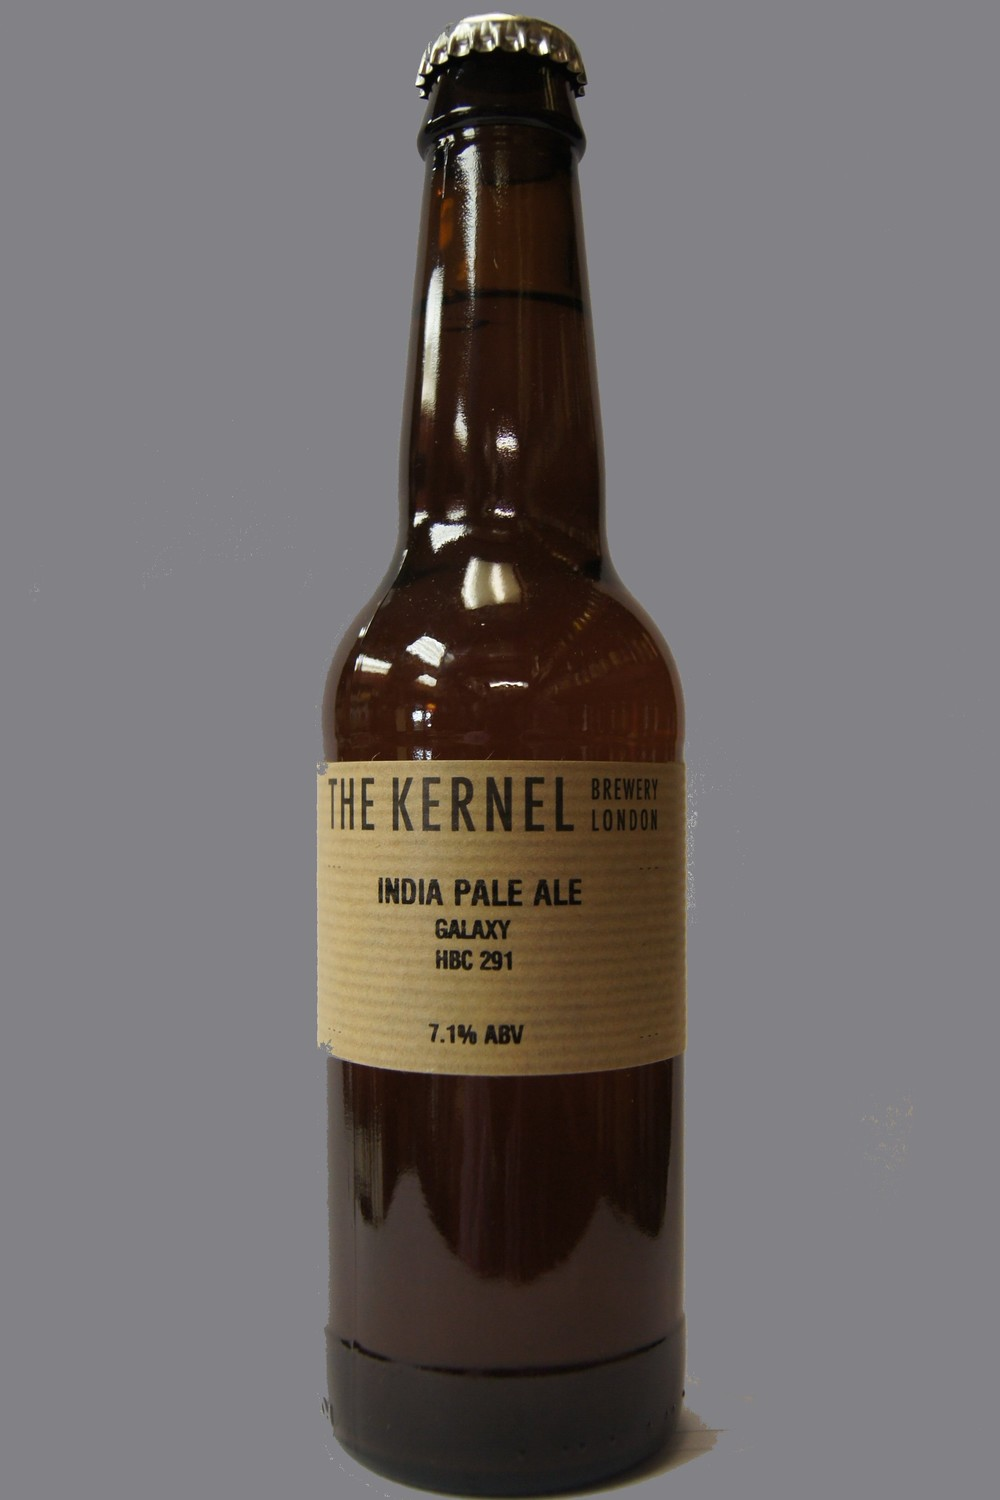 THE KERNEL BREWERY-India Pale Ale Galaxy HBC 291.jpg